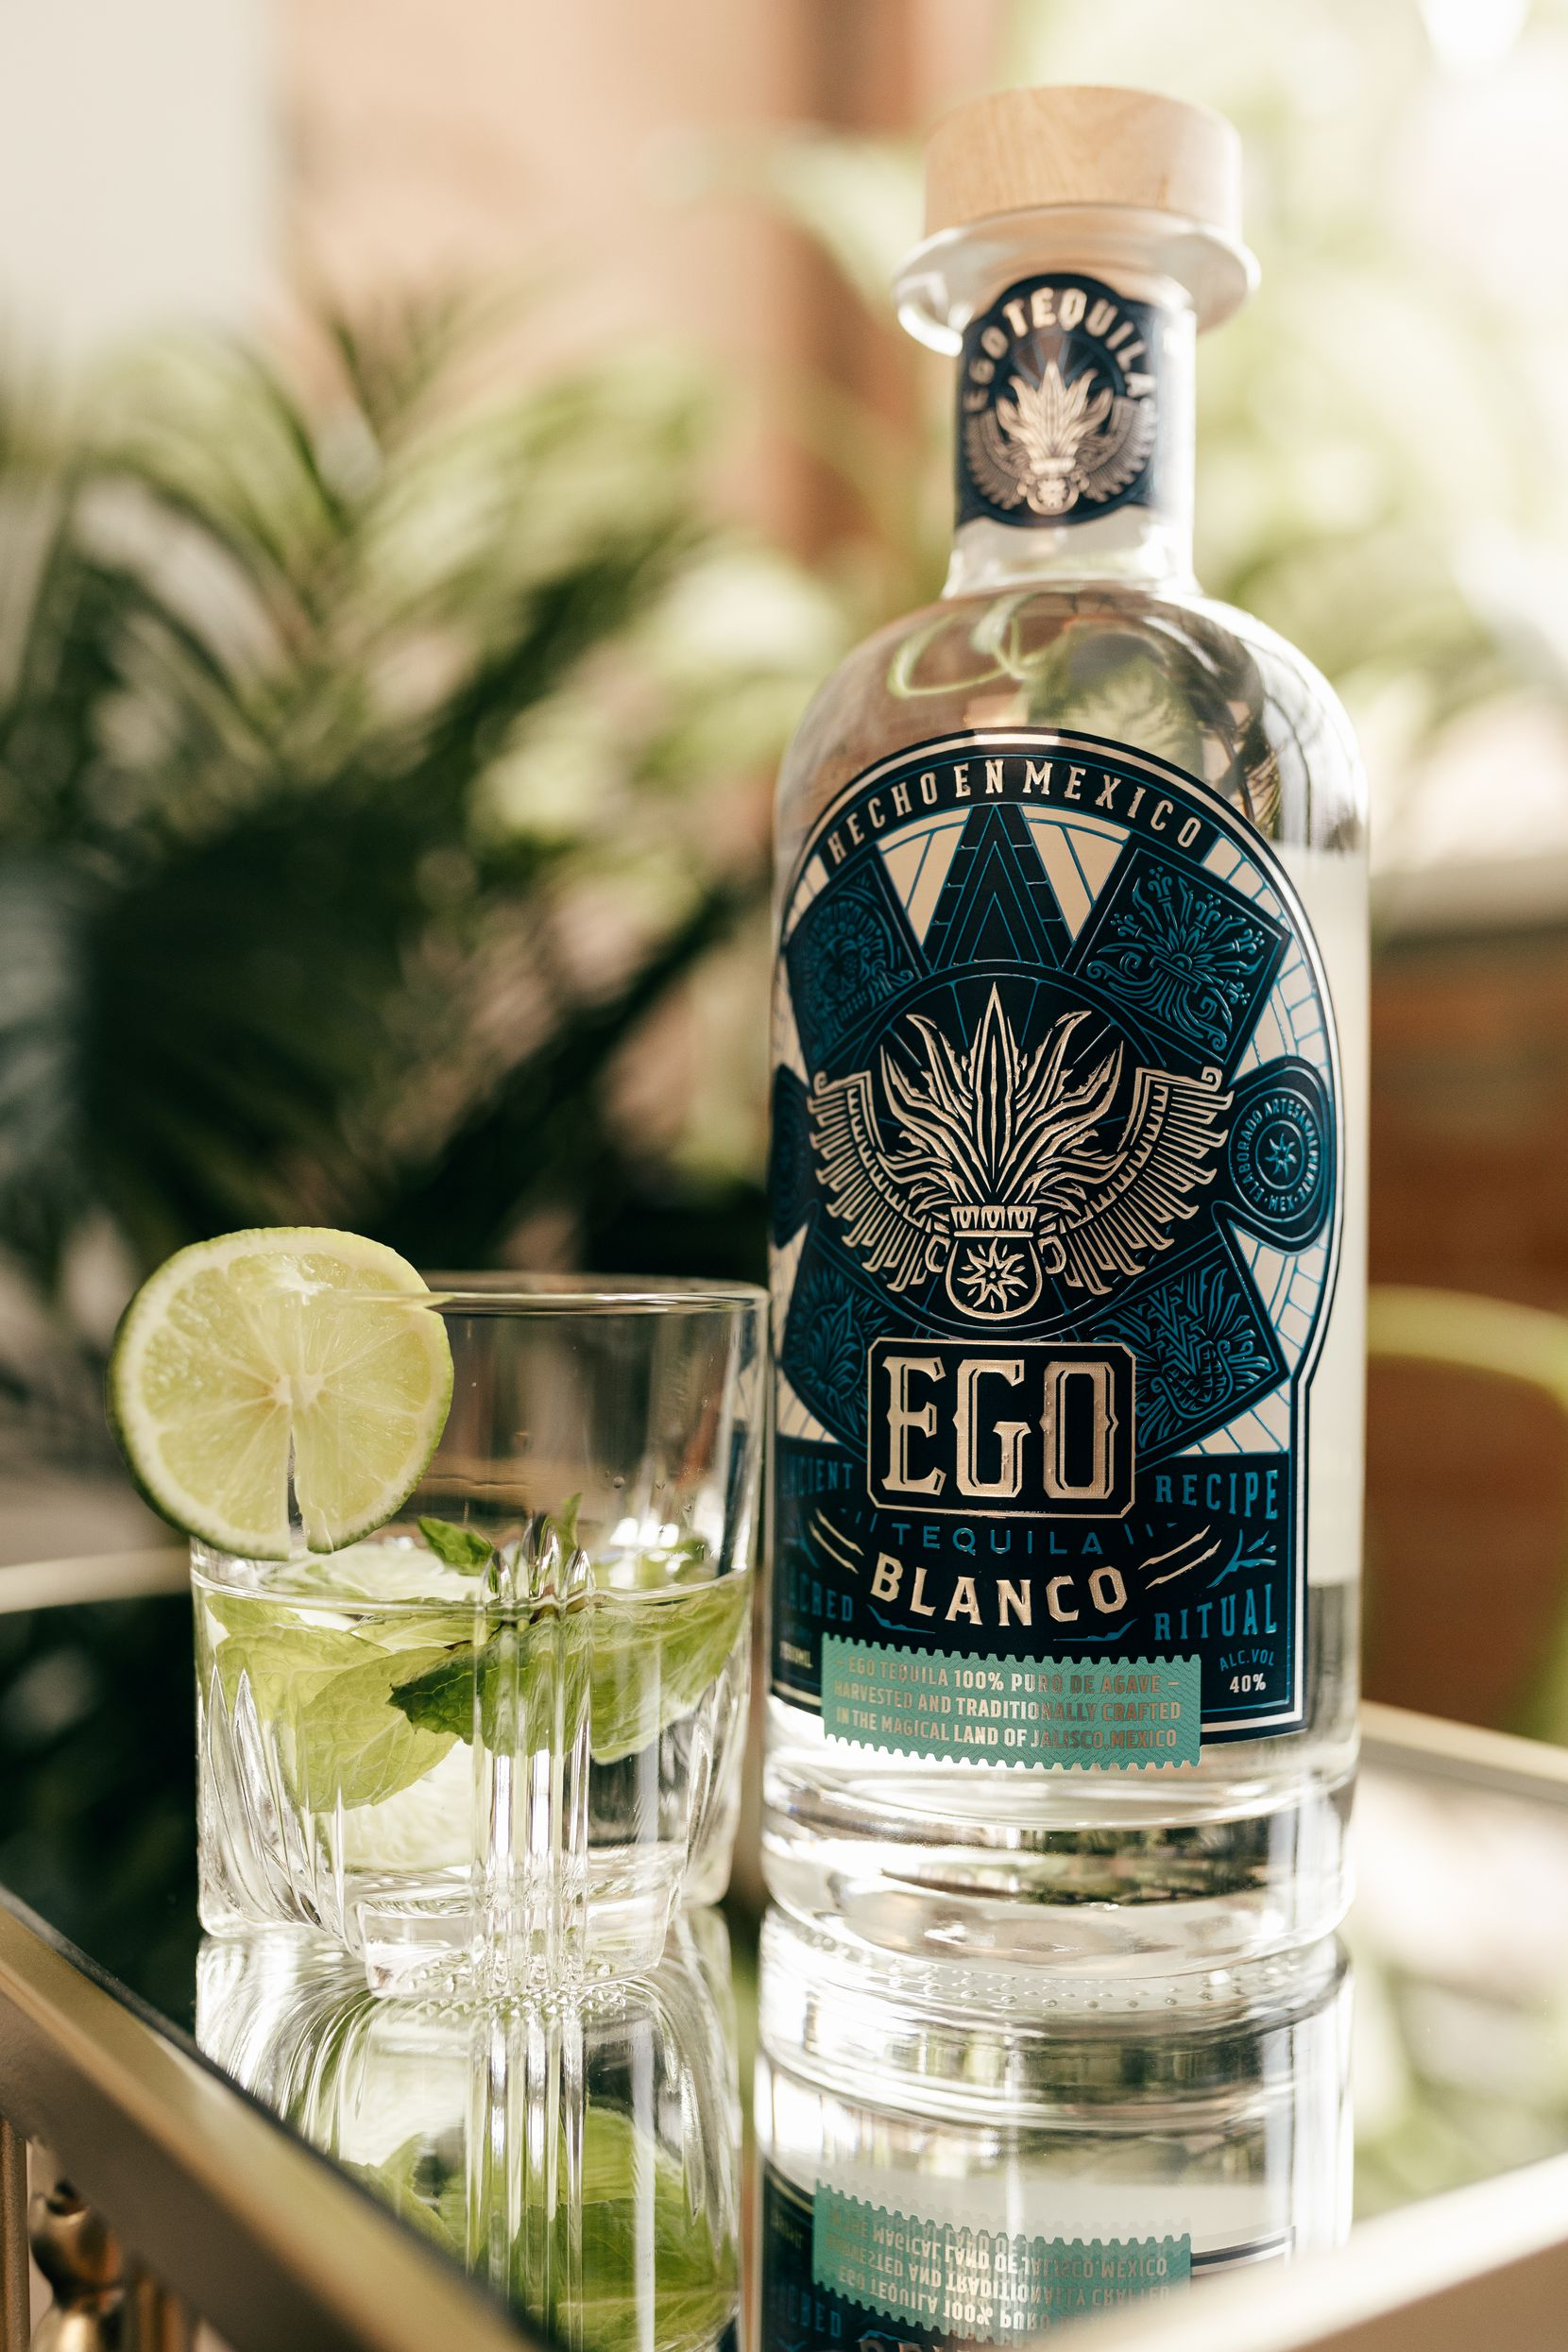 Rikki Kelly founded Ego Tequila in North Texas.